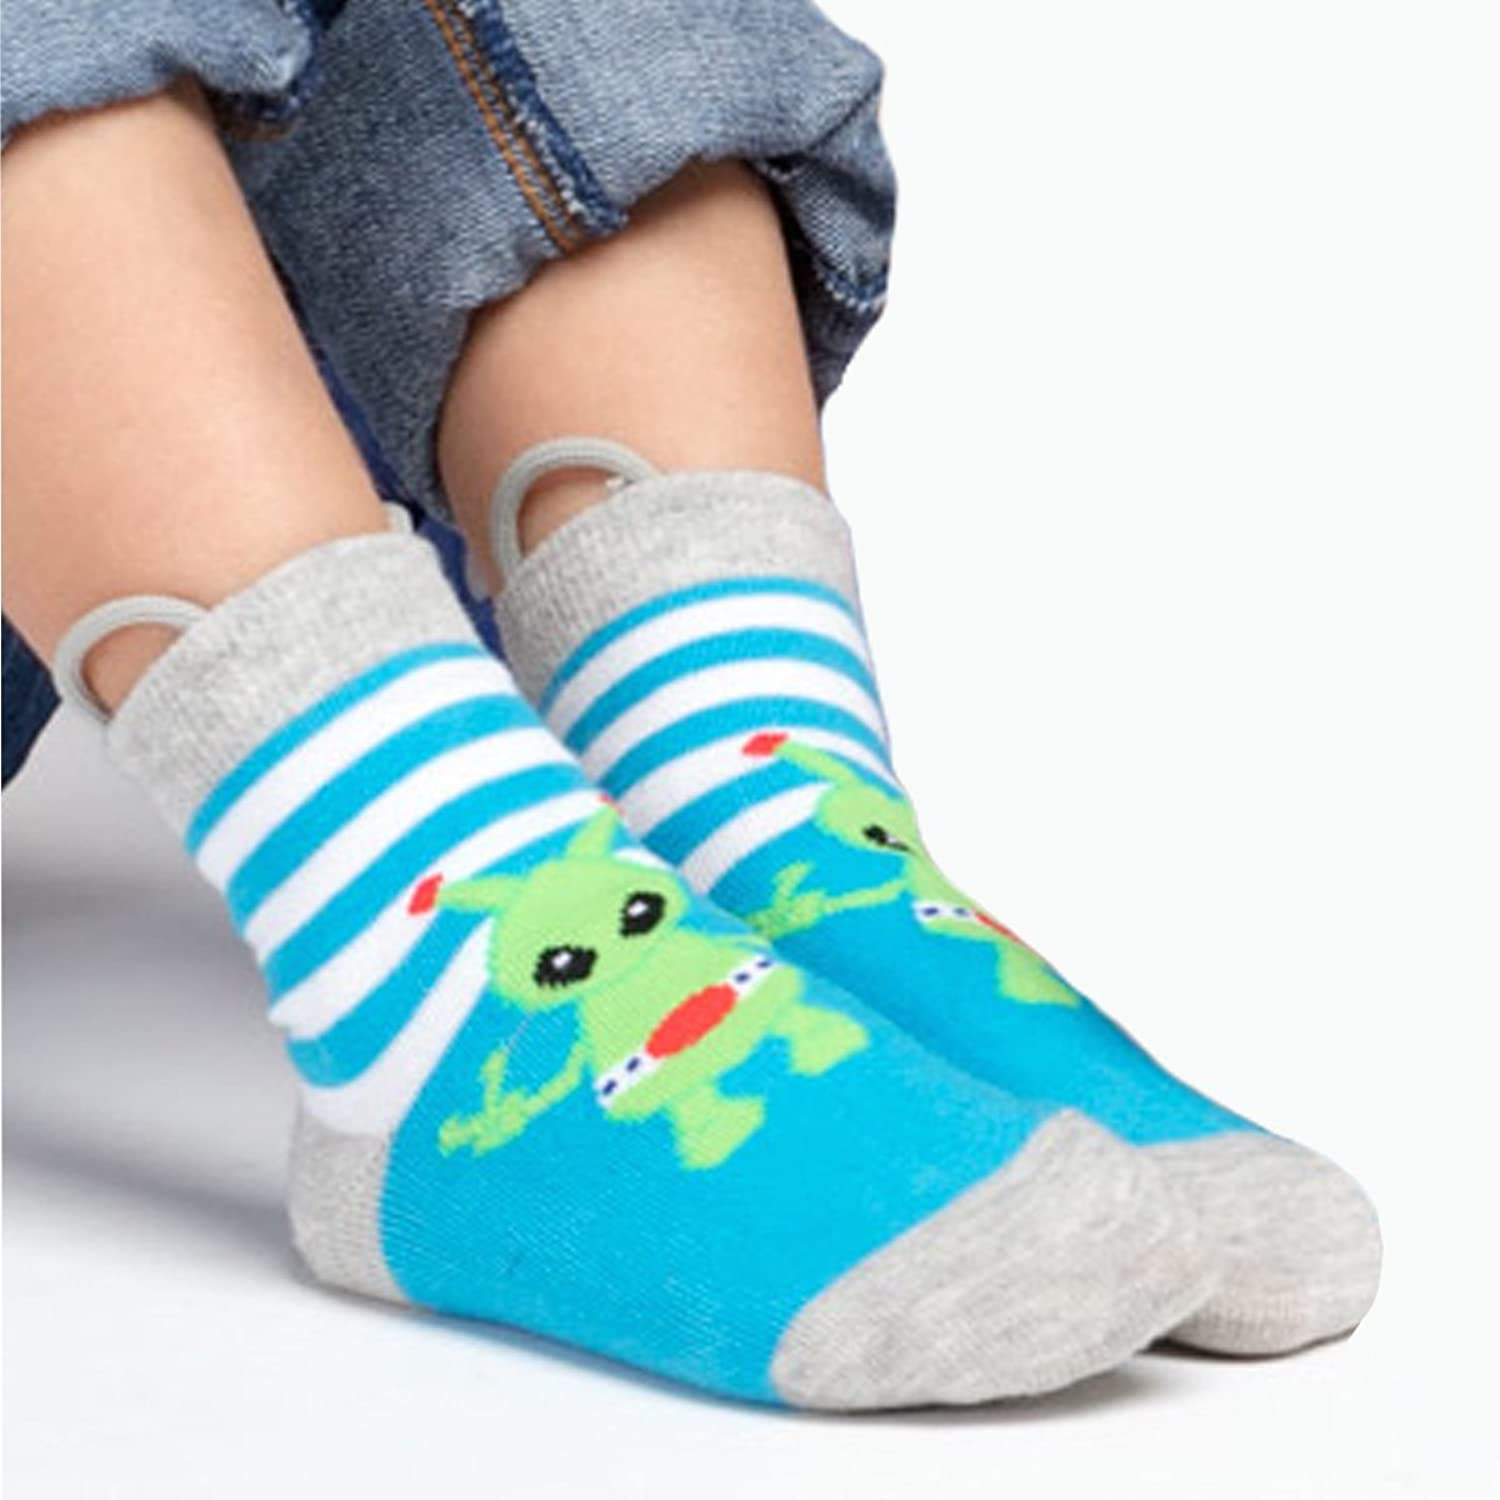 Amazon.com: Boys Toddler Socks, Seamless Non Skid Grip Monsters, Alien, Robot, Pull Up Ez Socks: Clothing